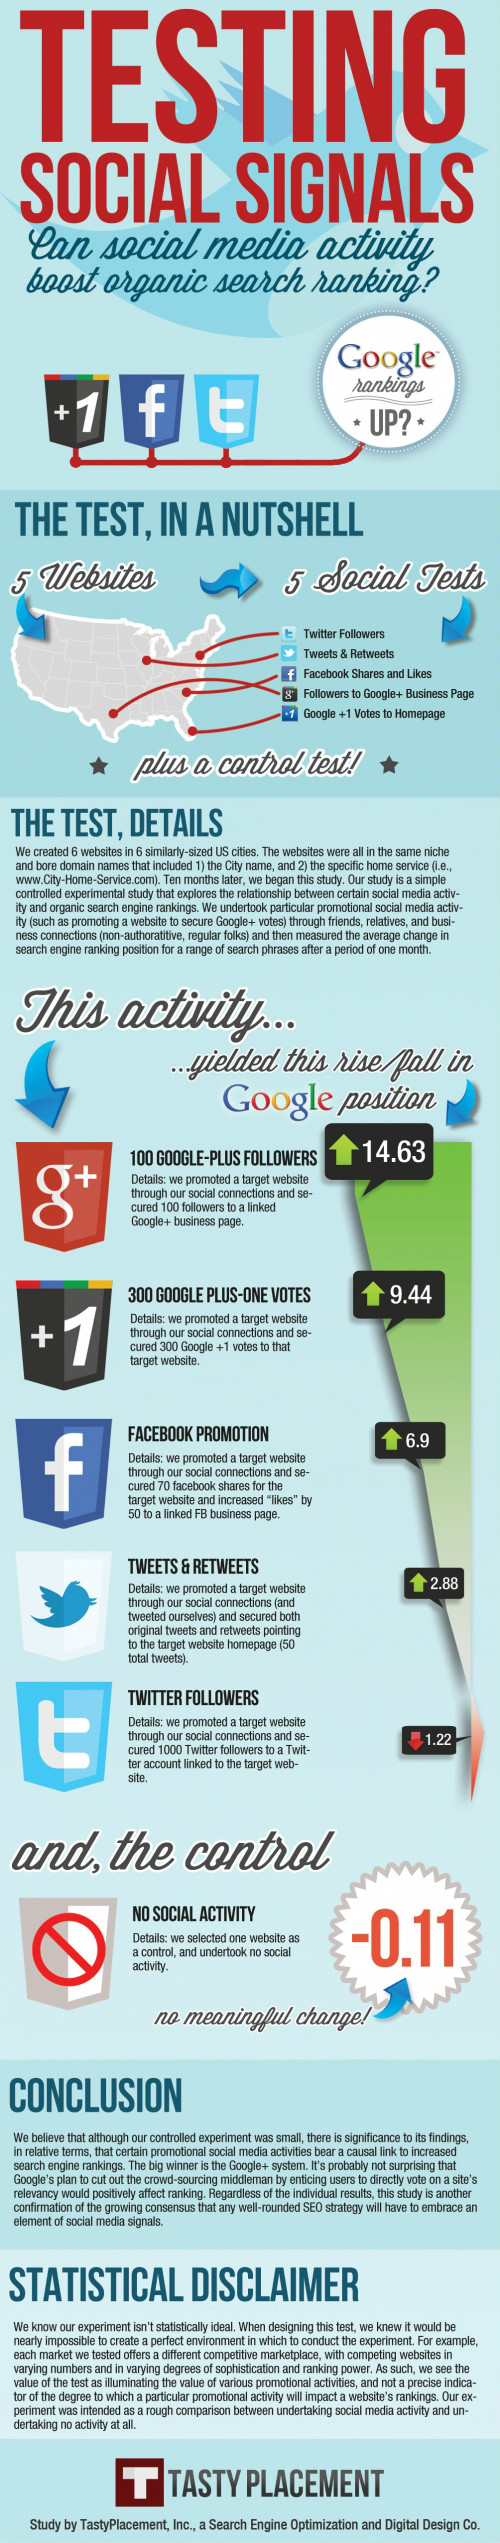 Can social media activity really affect organic rankings